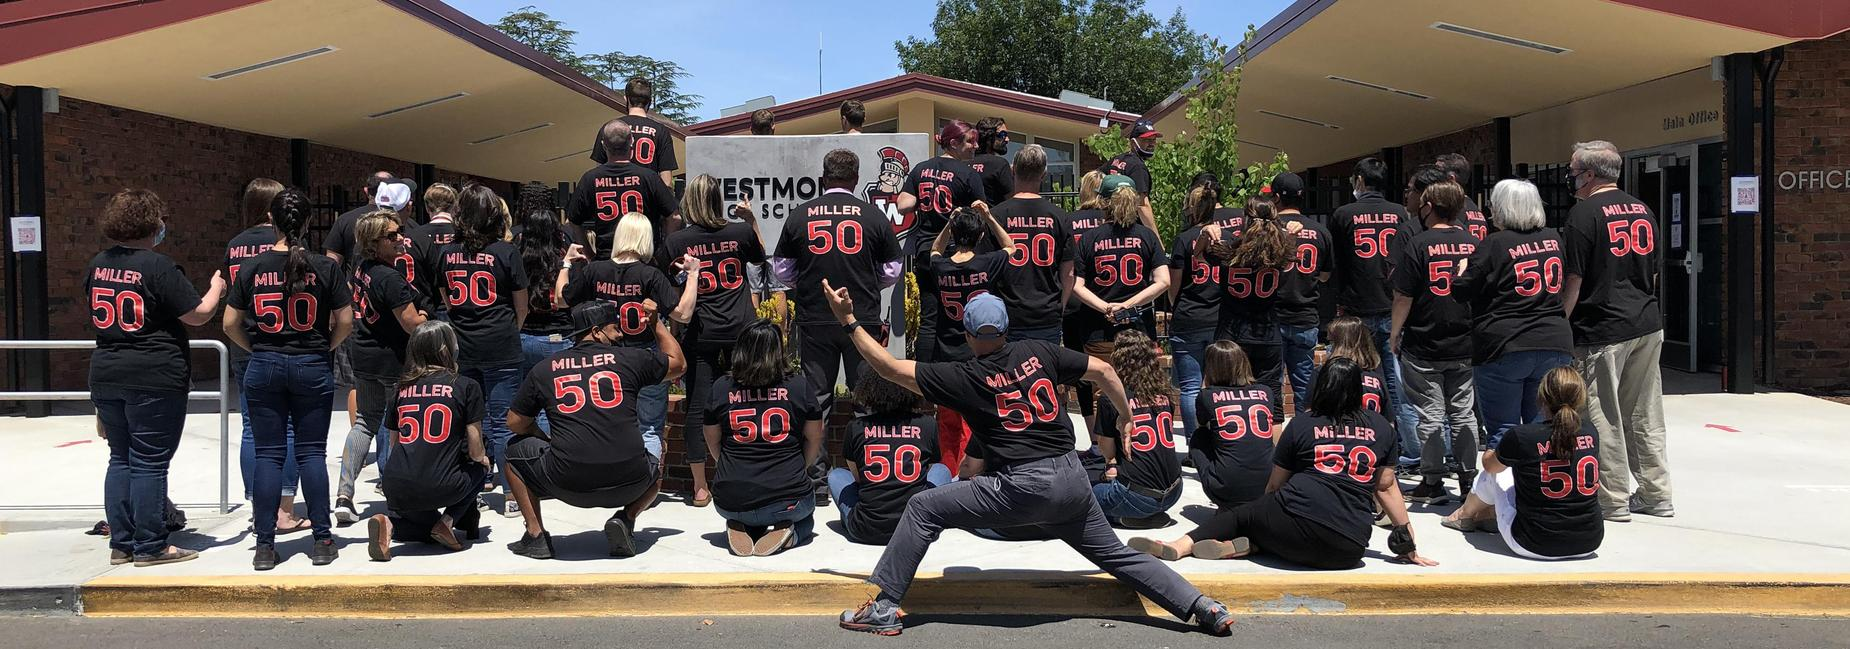 Westmont staff wearing matching shirts that say Miller #50 on the back to celebrate Principal Miller's 50th birthday.